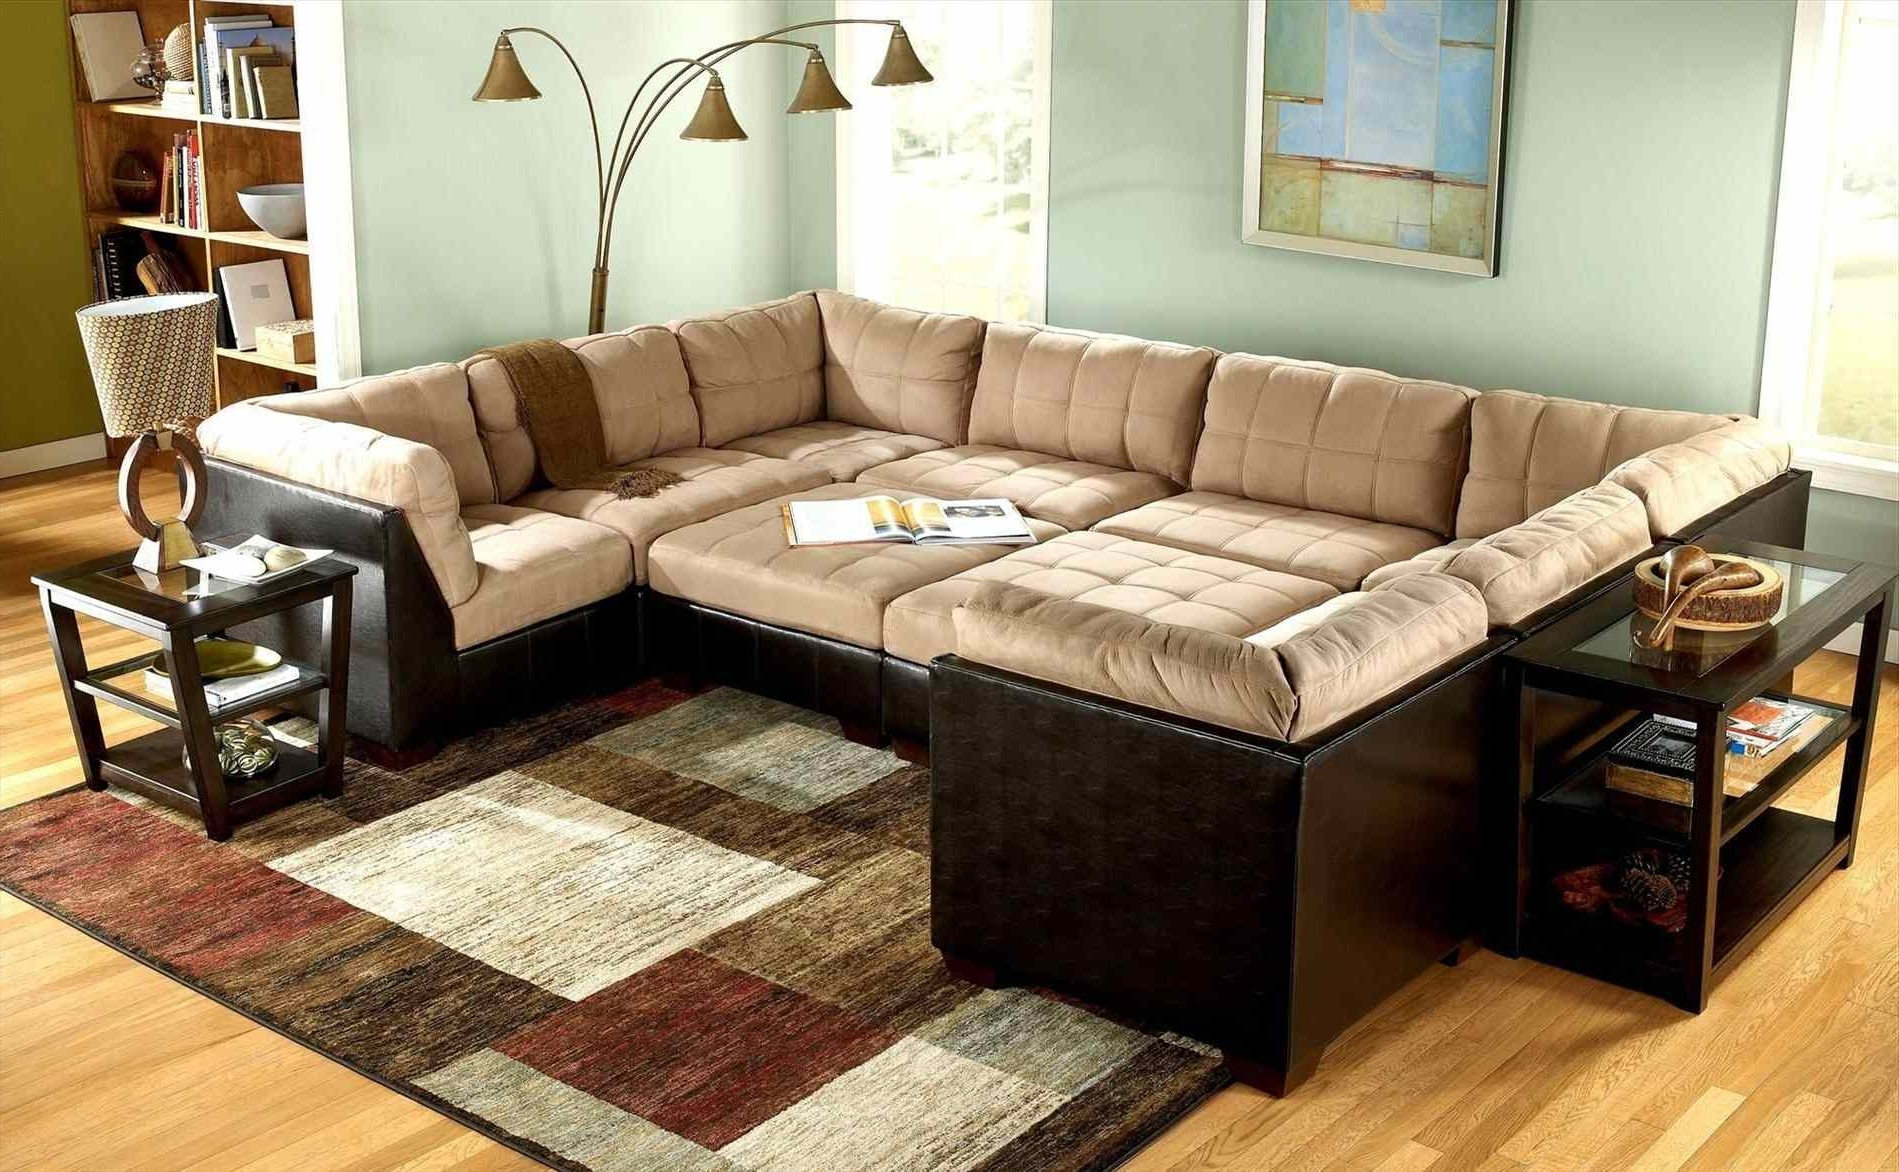 Widely Used Sectional Couches With Large Ottoman Intended For Couch : Ottomans Wrap Around Couch Unusual Design Large Sectional (View 20 of 20)